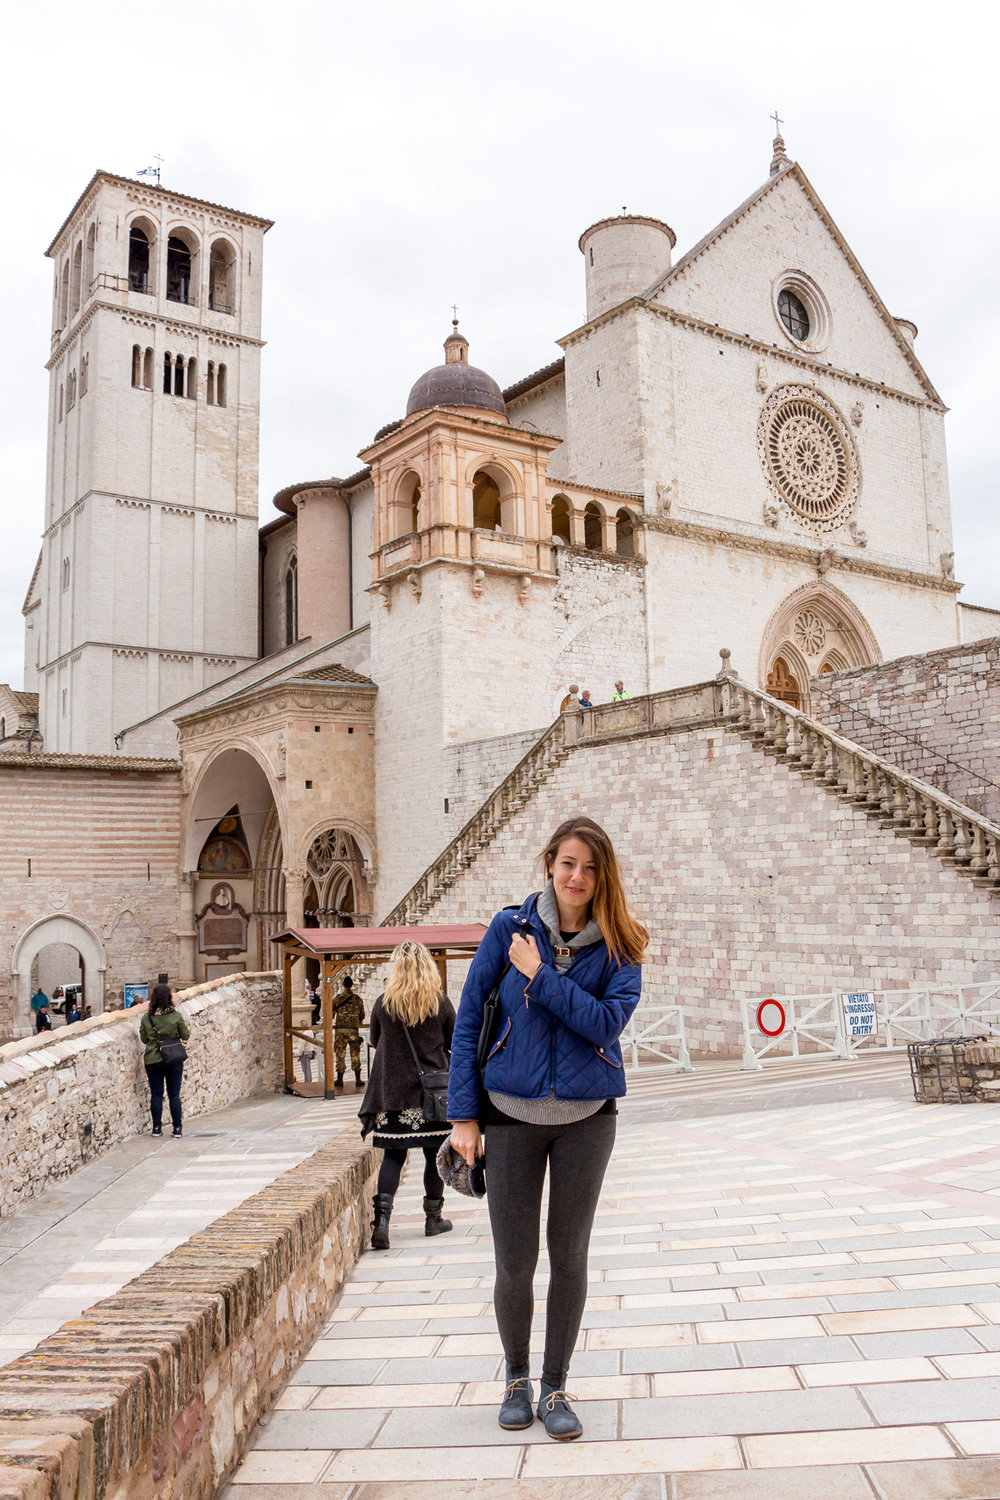 Visiting Assisi, Umbria